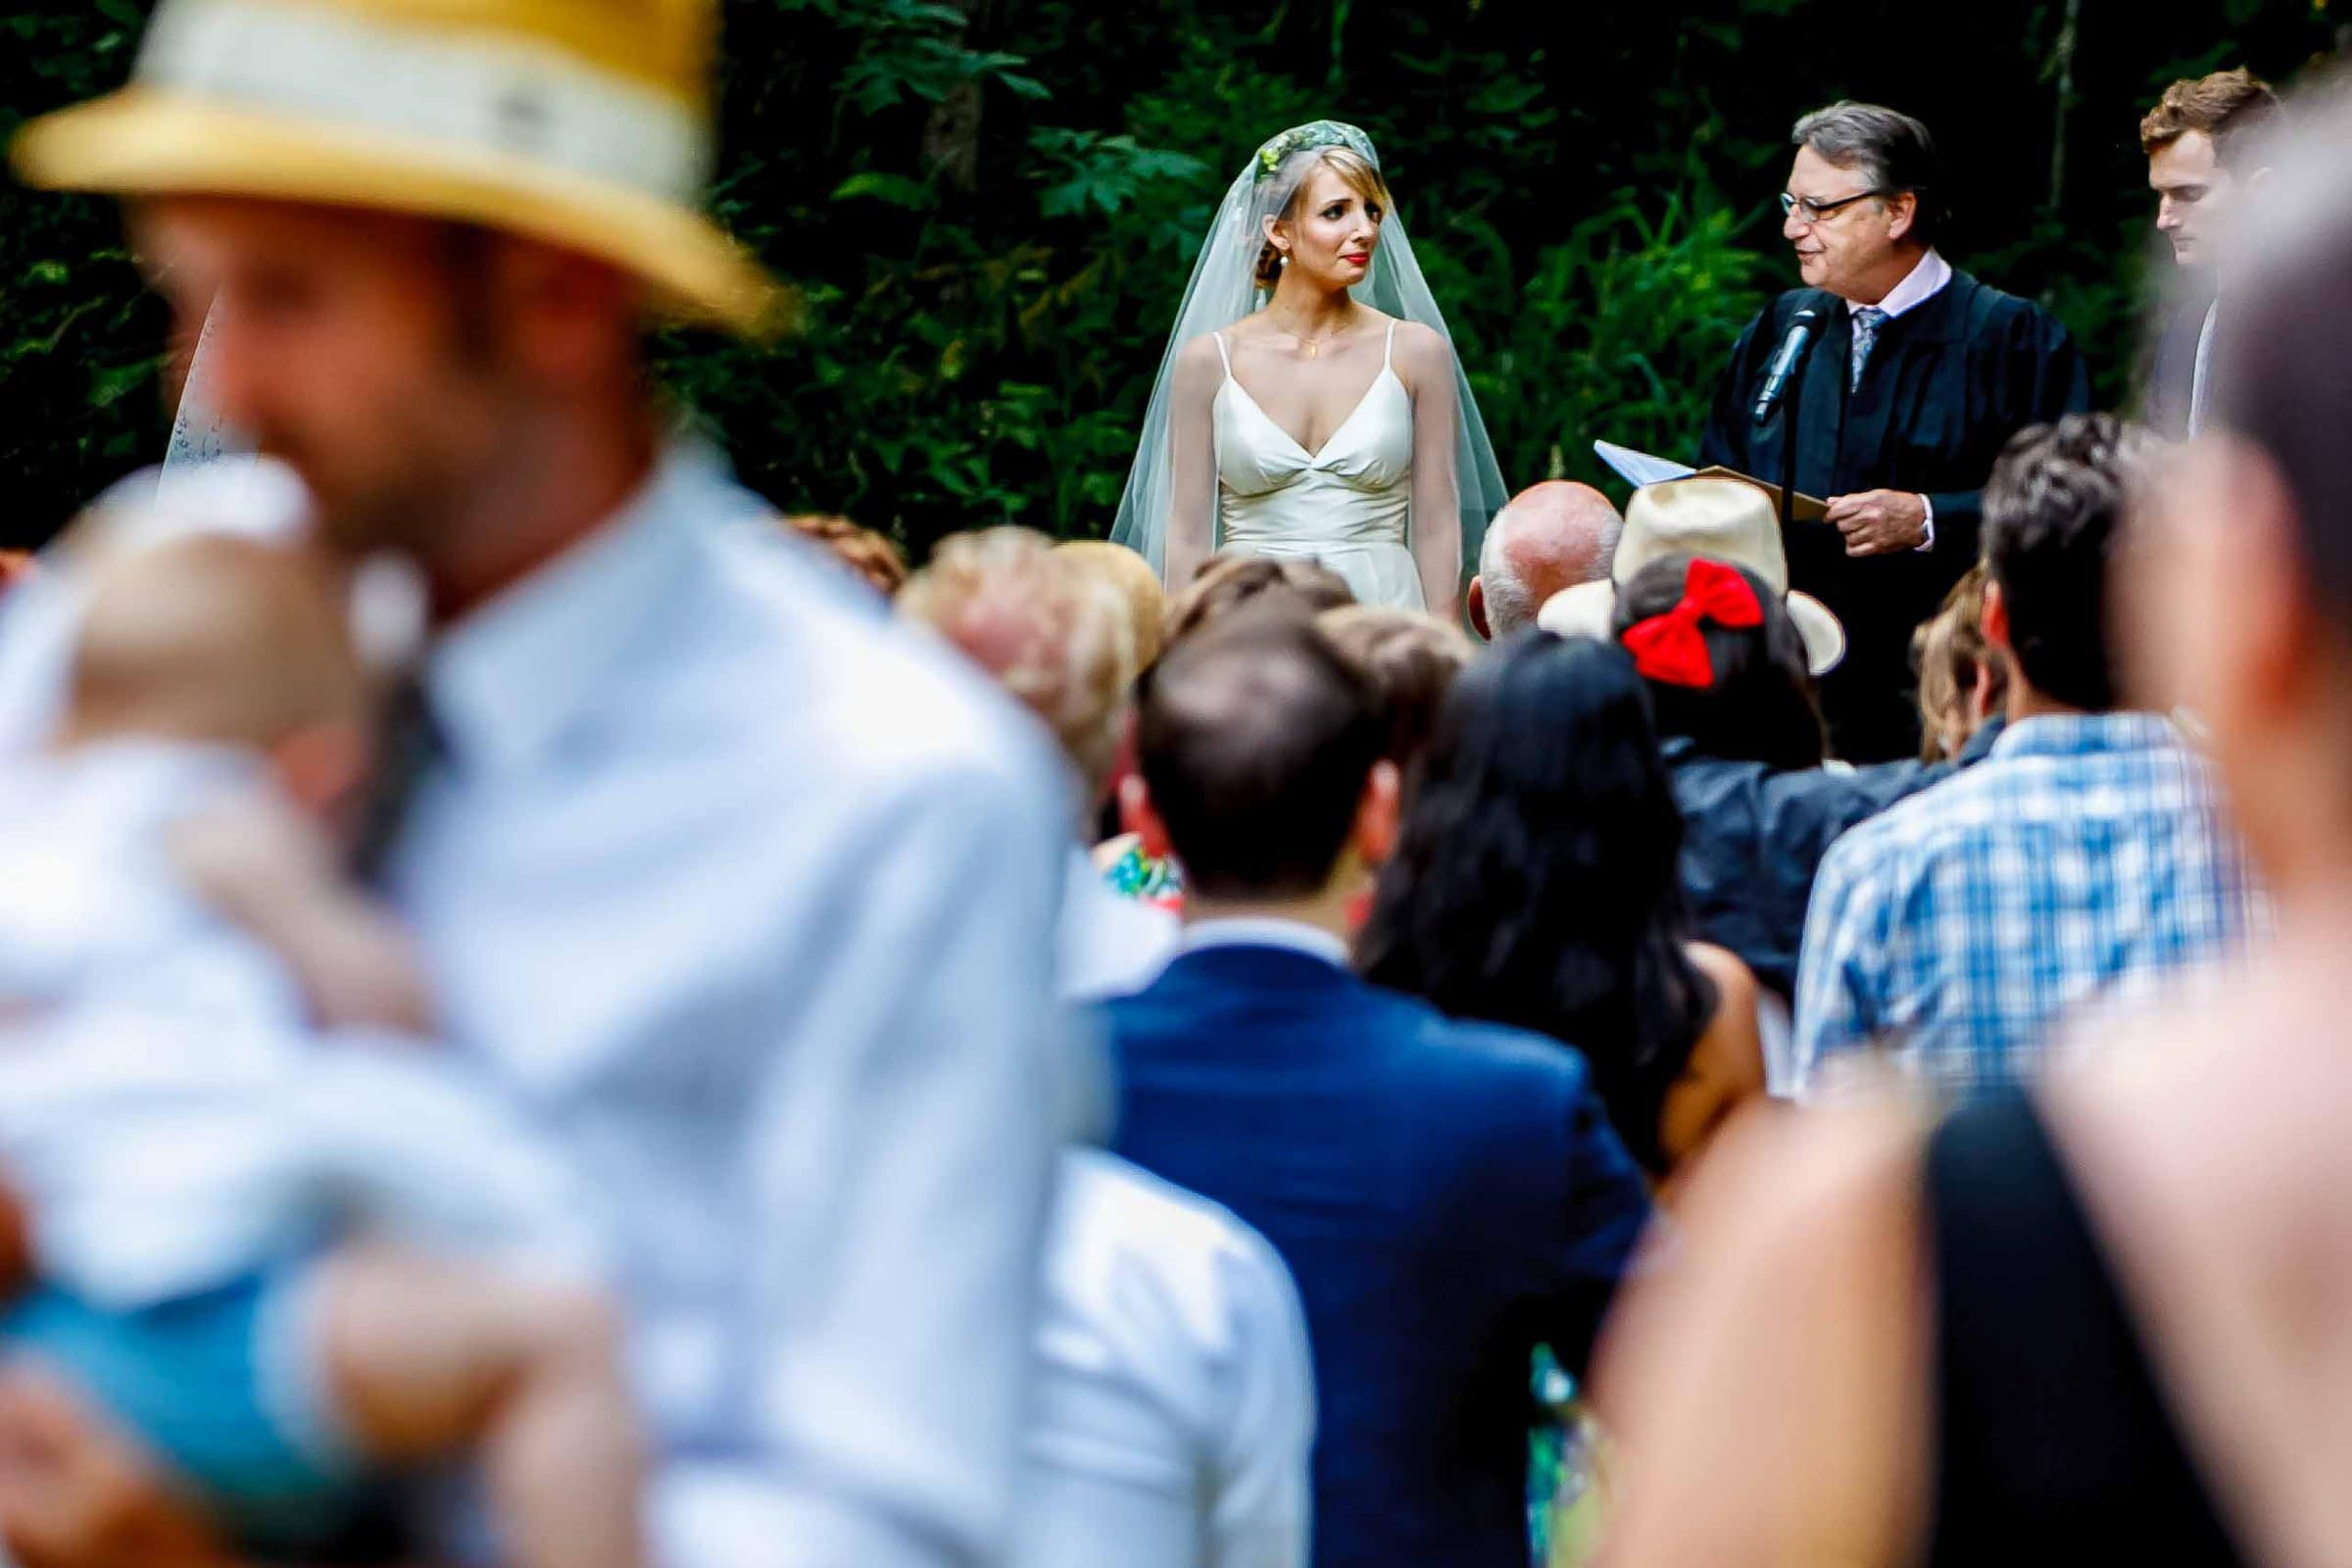 An emotional photo of a bride exchanging vows during a camp angleos wedding ceremony in Oregon